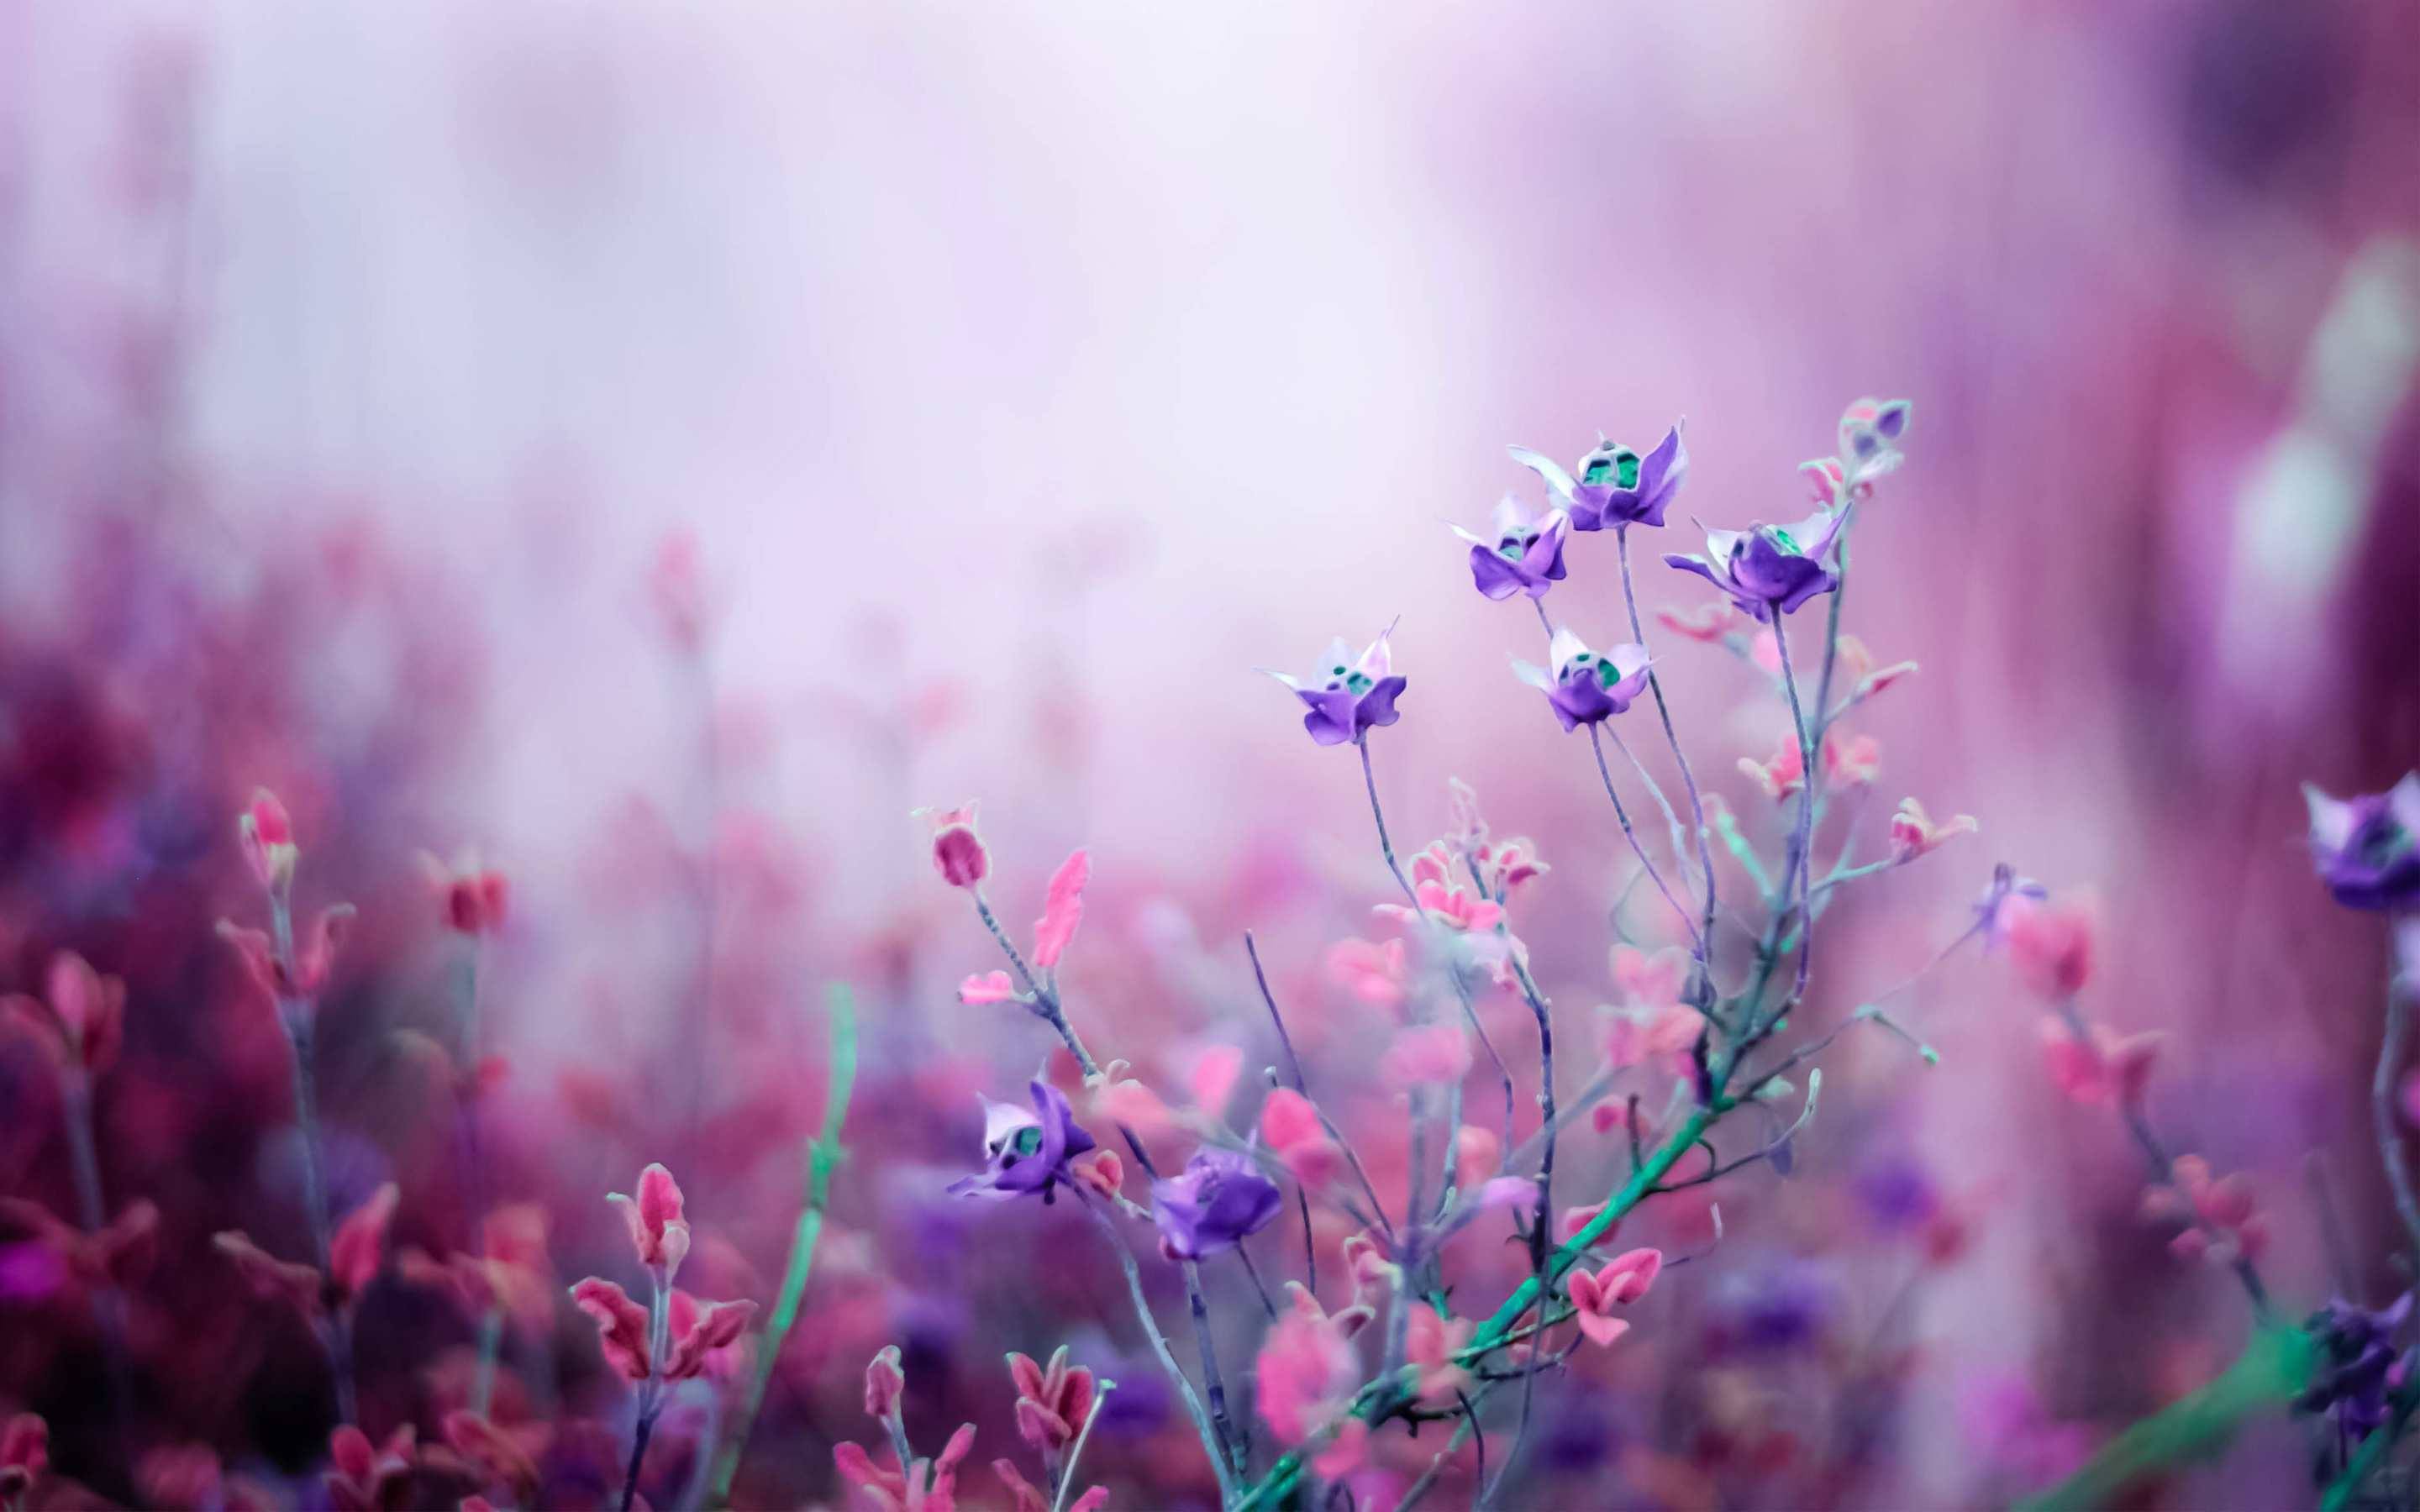 A Field Of Purple Flowers In The Mist Hd Wallpapers